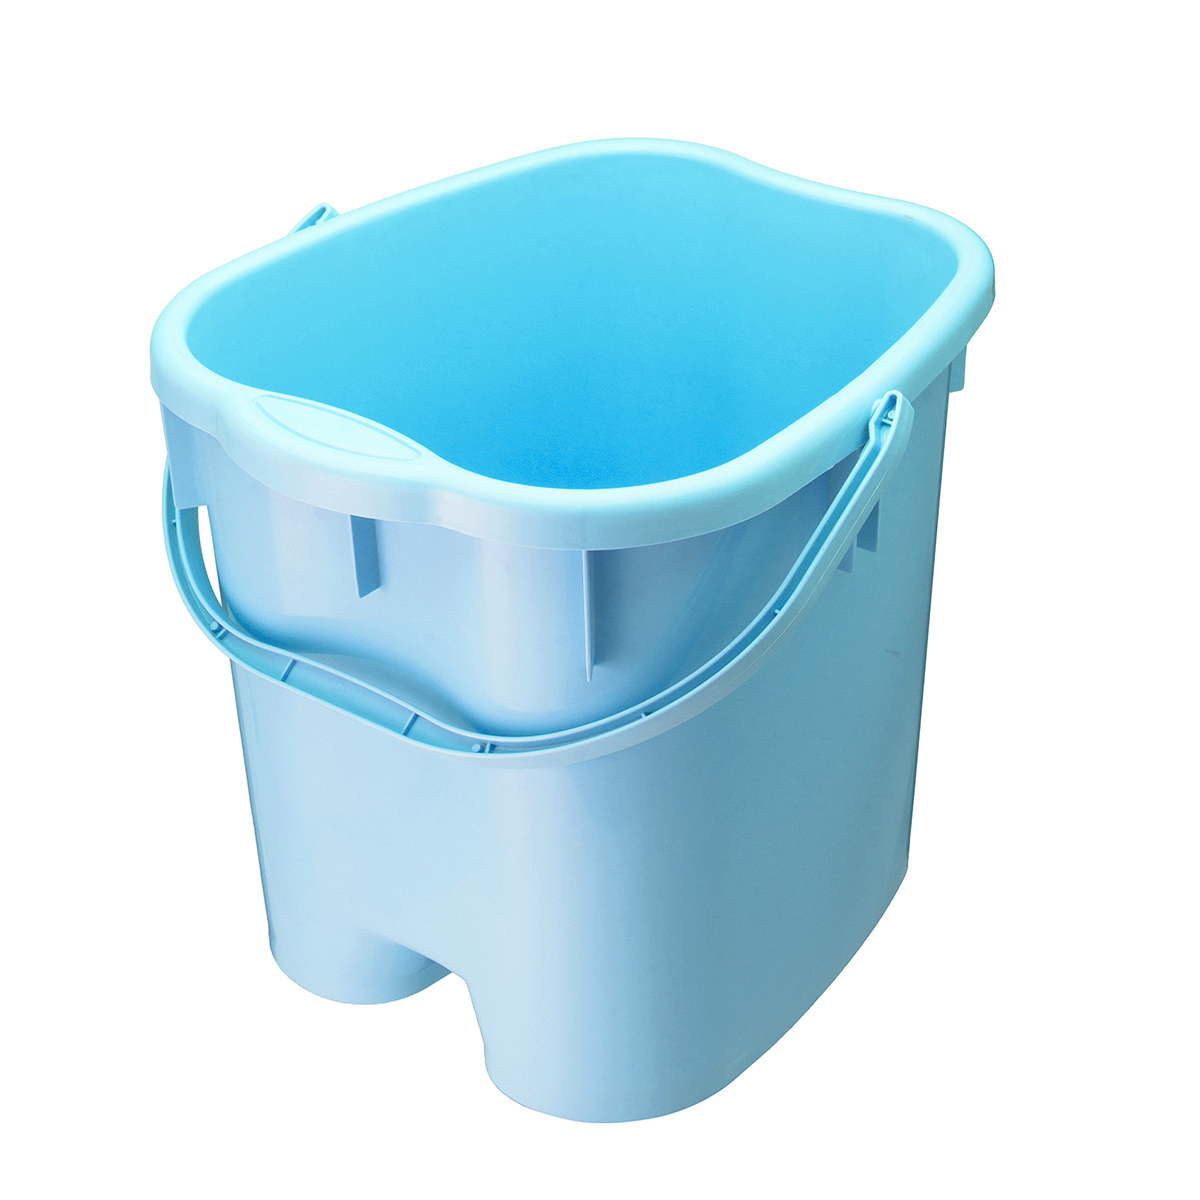 2 Sizes Blue/Green/Purple Plastic Japanese Foot Detox Spa Bath ...